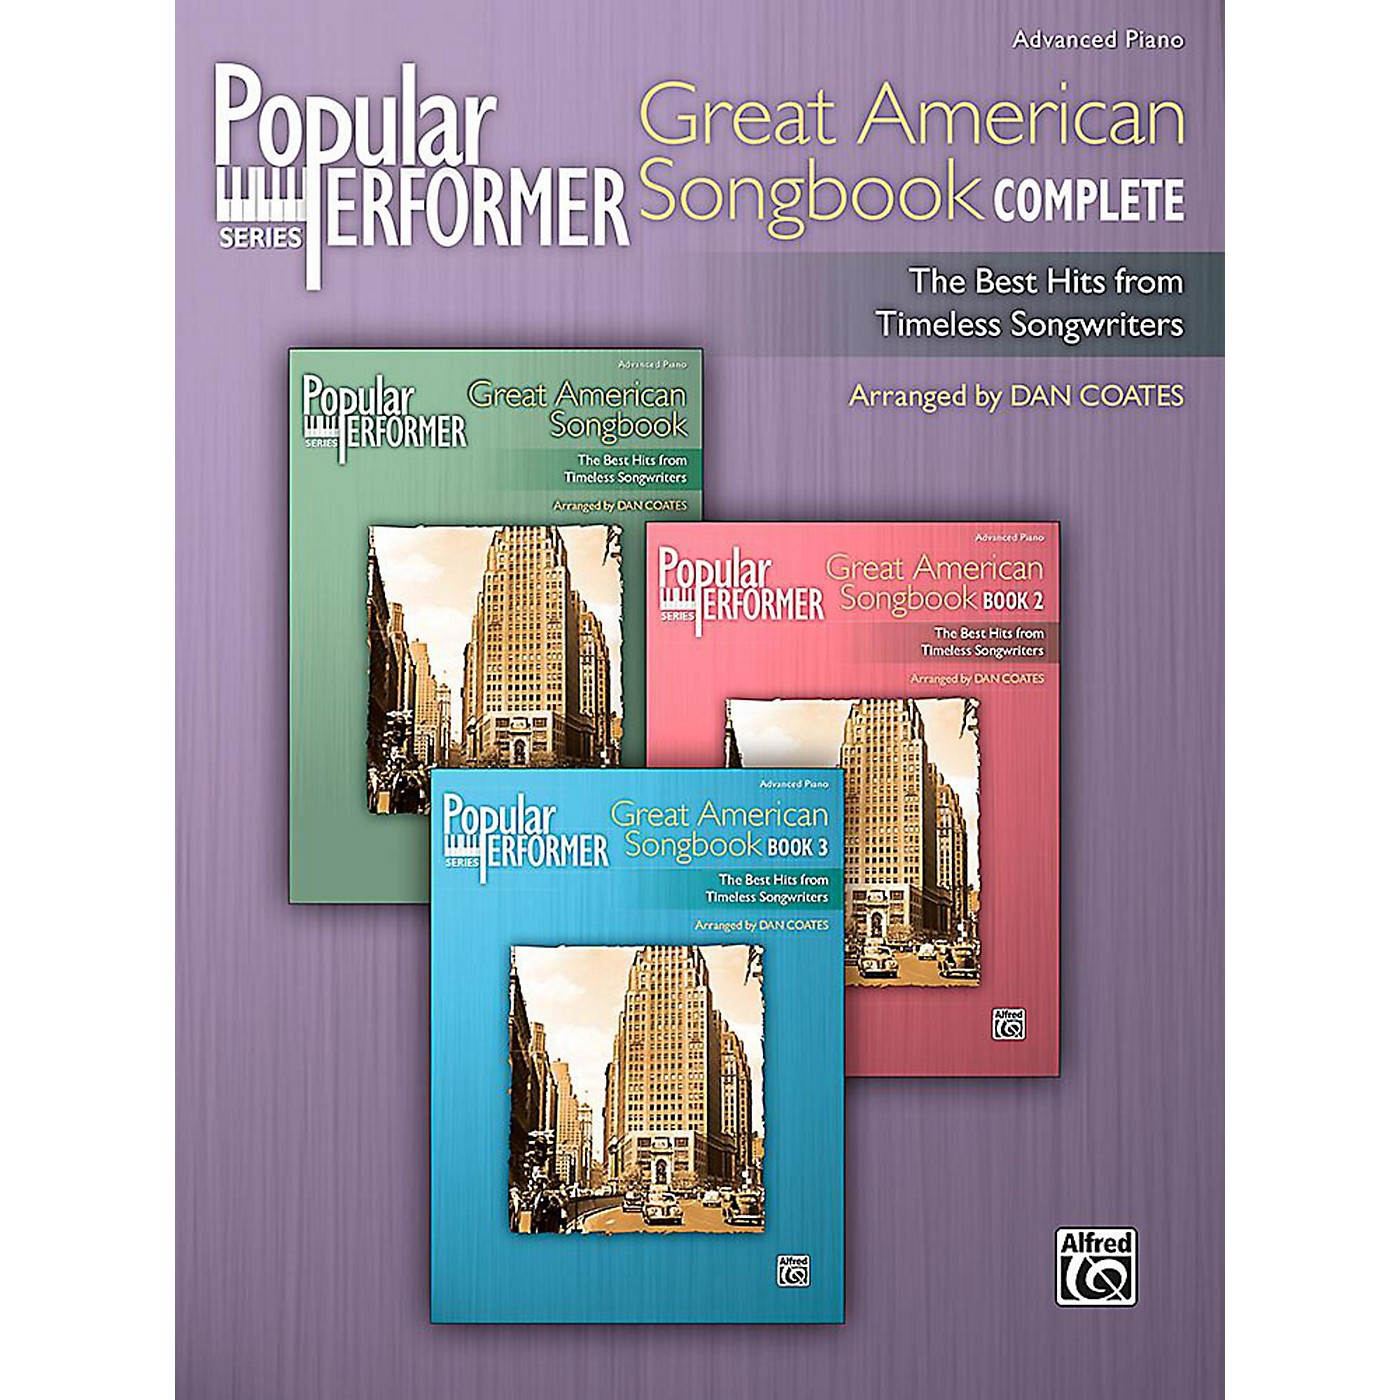 Alfred Popular Performer: Great American Songbook Complete - Advanced Book thumbnail